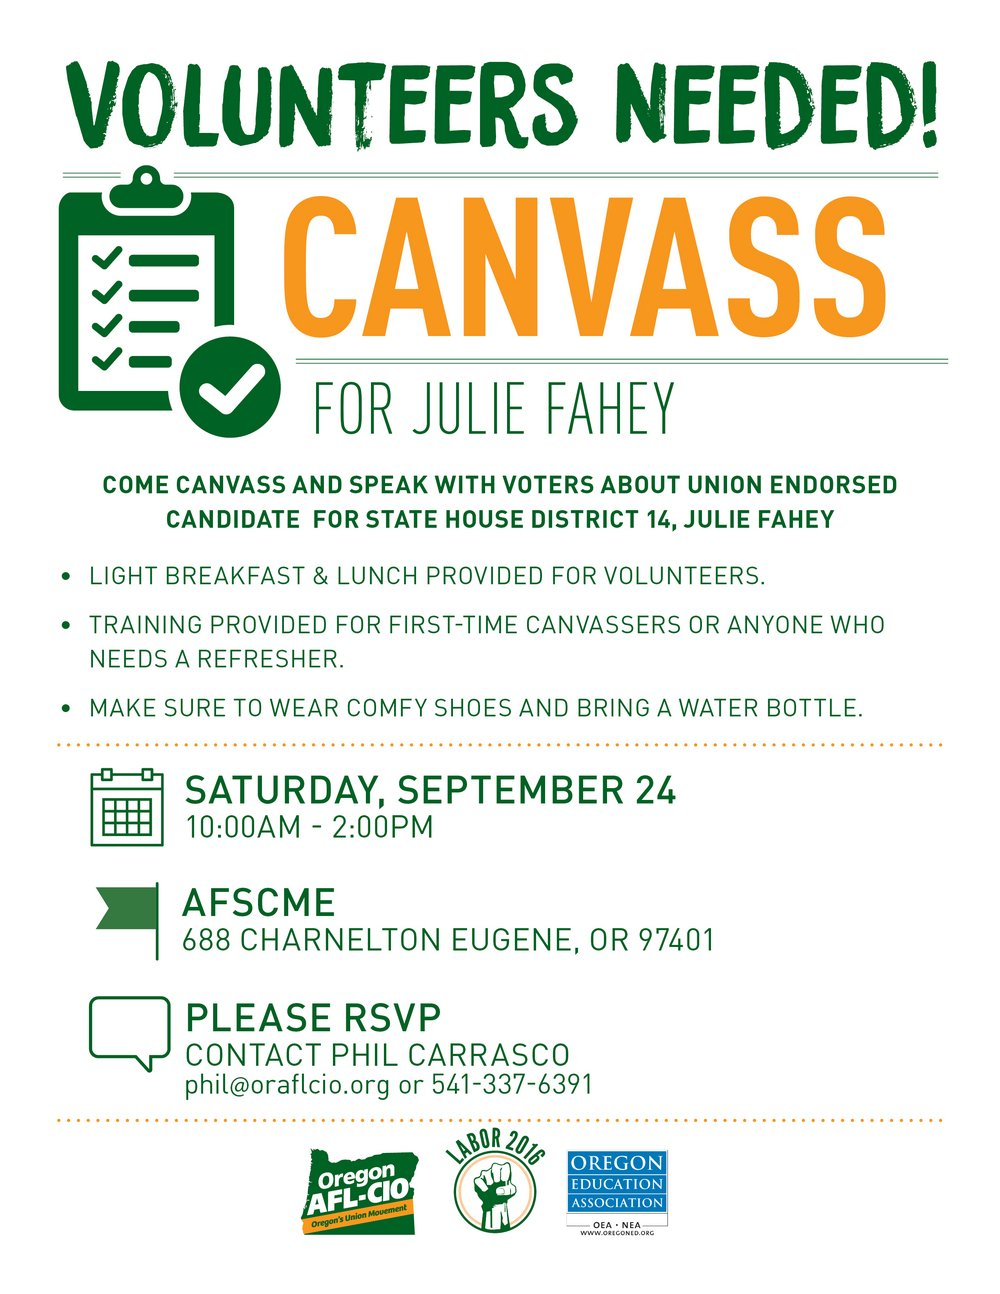 Lane CLC Canvass September 24th Outreach Flier.jpg